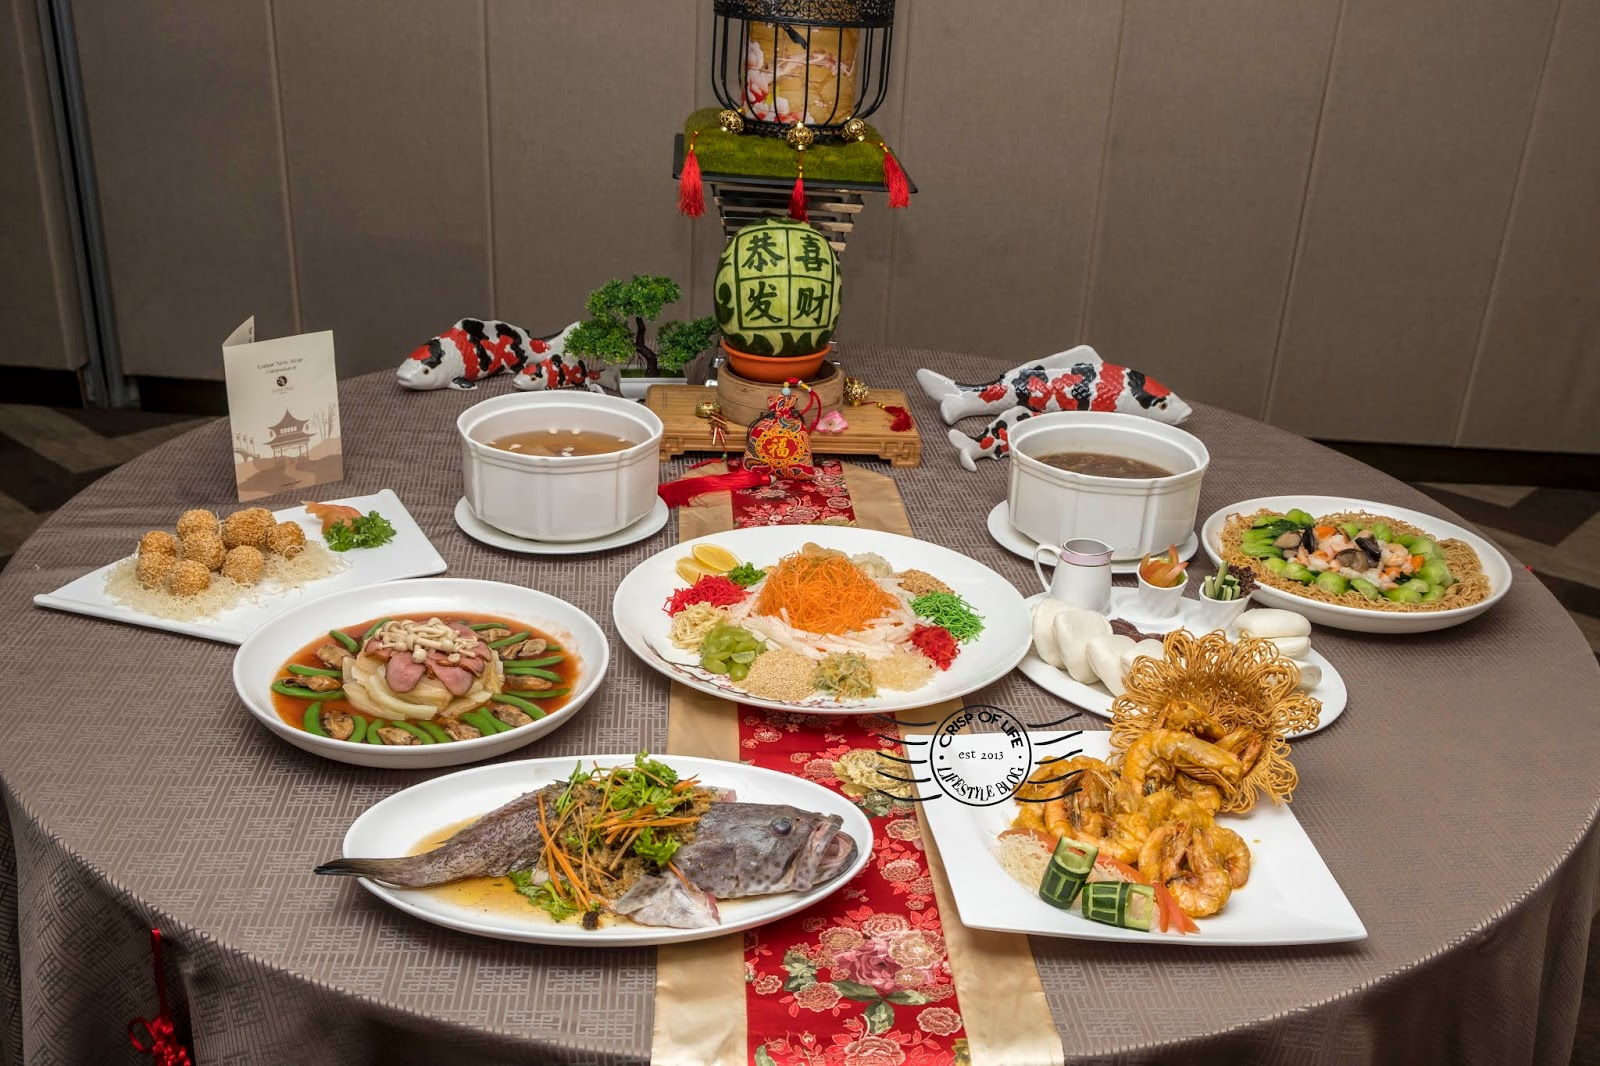 Chinese New Year 2019 Course Menu and Buffet Olive Tree Hotel Penang